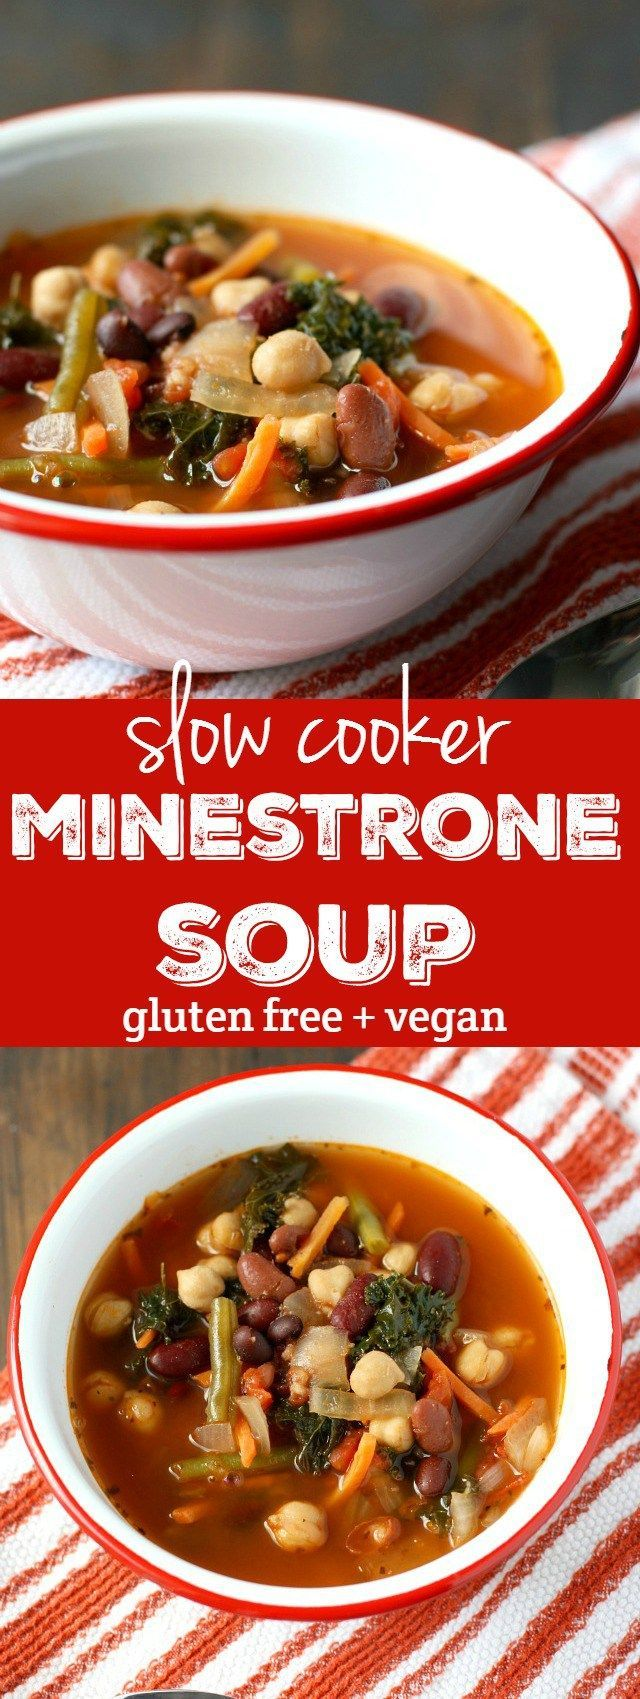 Easy Slow Cooker Minestrone Soup Recipe The O 39 Jays